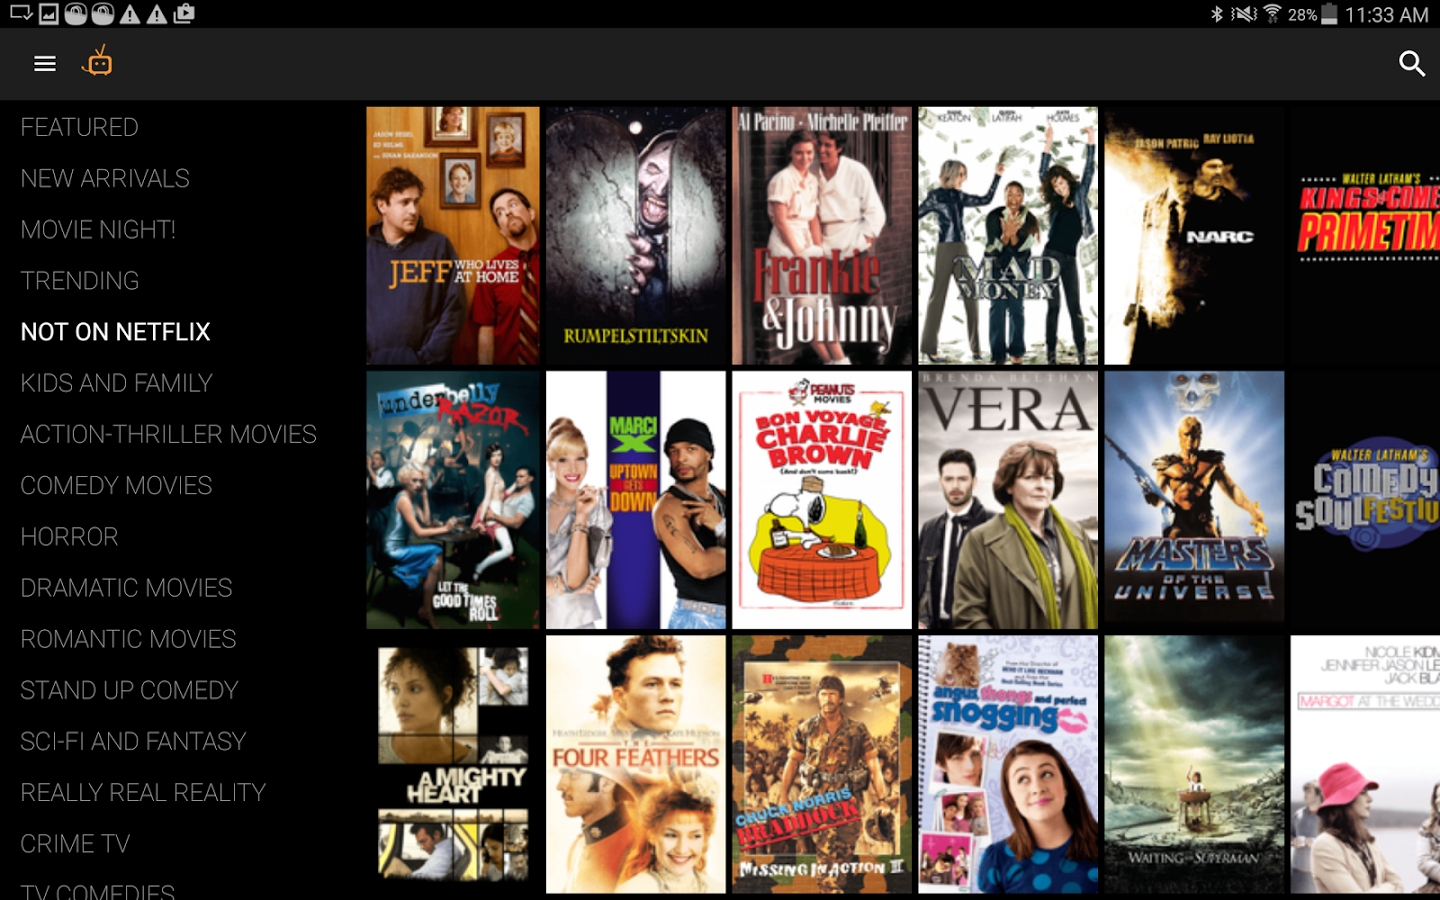 Download Tubi TV Apk On Android- Watch Movies And TV show